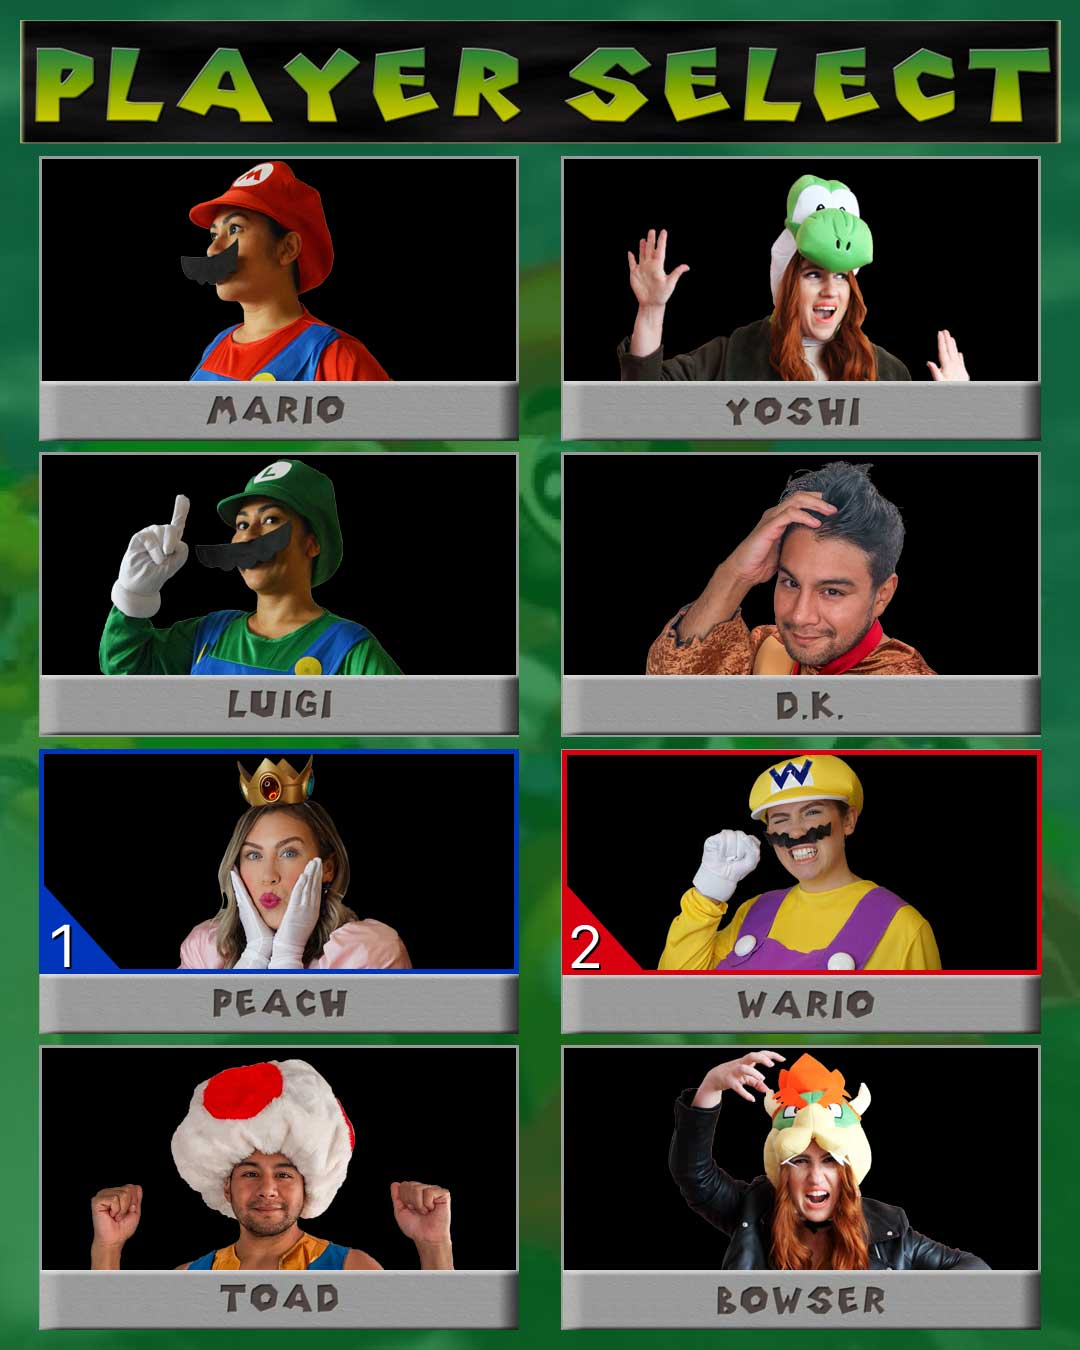 Mario Kart Costumes | Super Mario Brothers Costumes | Mario Luigi Princess Peach Cosplay | The Funniest Group Halloween Costumes for your Virtual Party | Zoom Halloween Costumes | Virtual Halloween Costume Ideas | Gamer Cosplay | Nintendo Costume